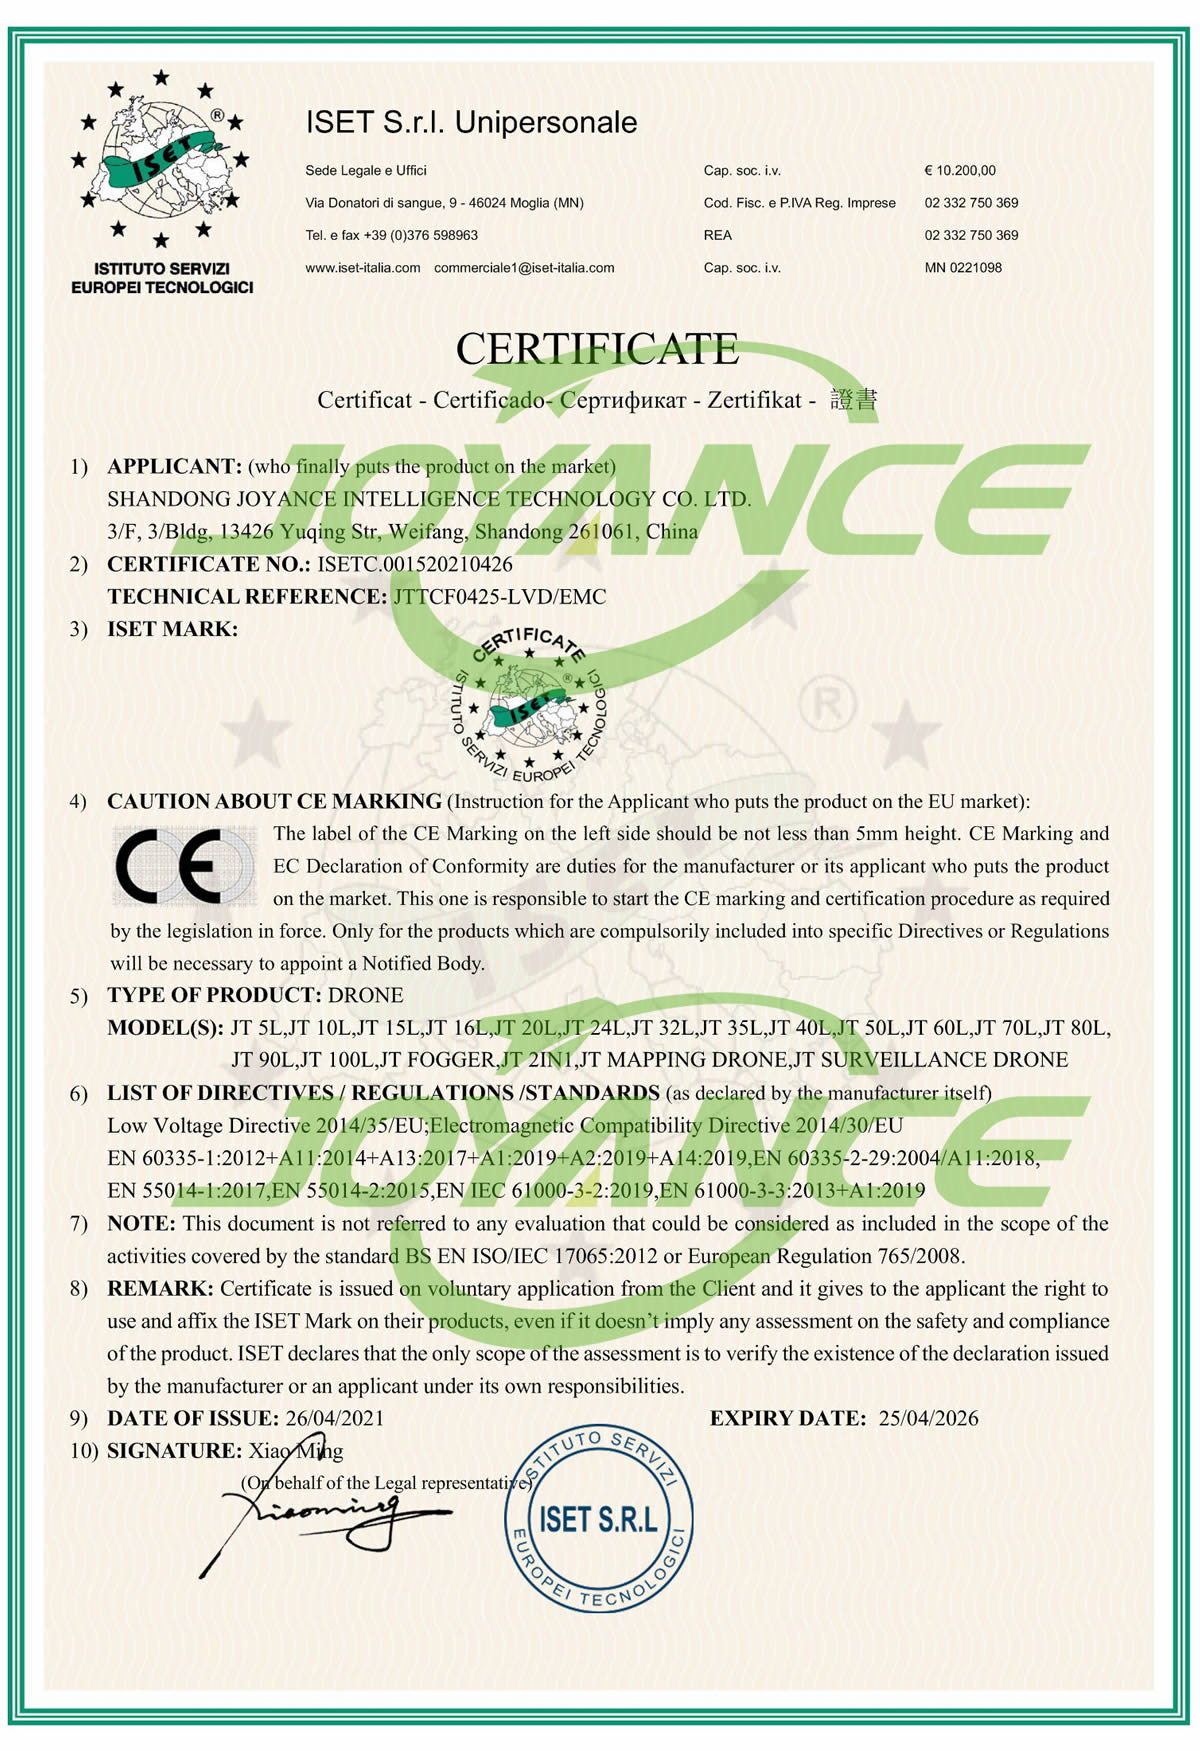 Joyance drones pass ce test and get ce certificatece certificate joyance drones pass ce test and get ce certificate xflitez Image collections